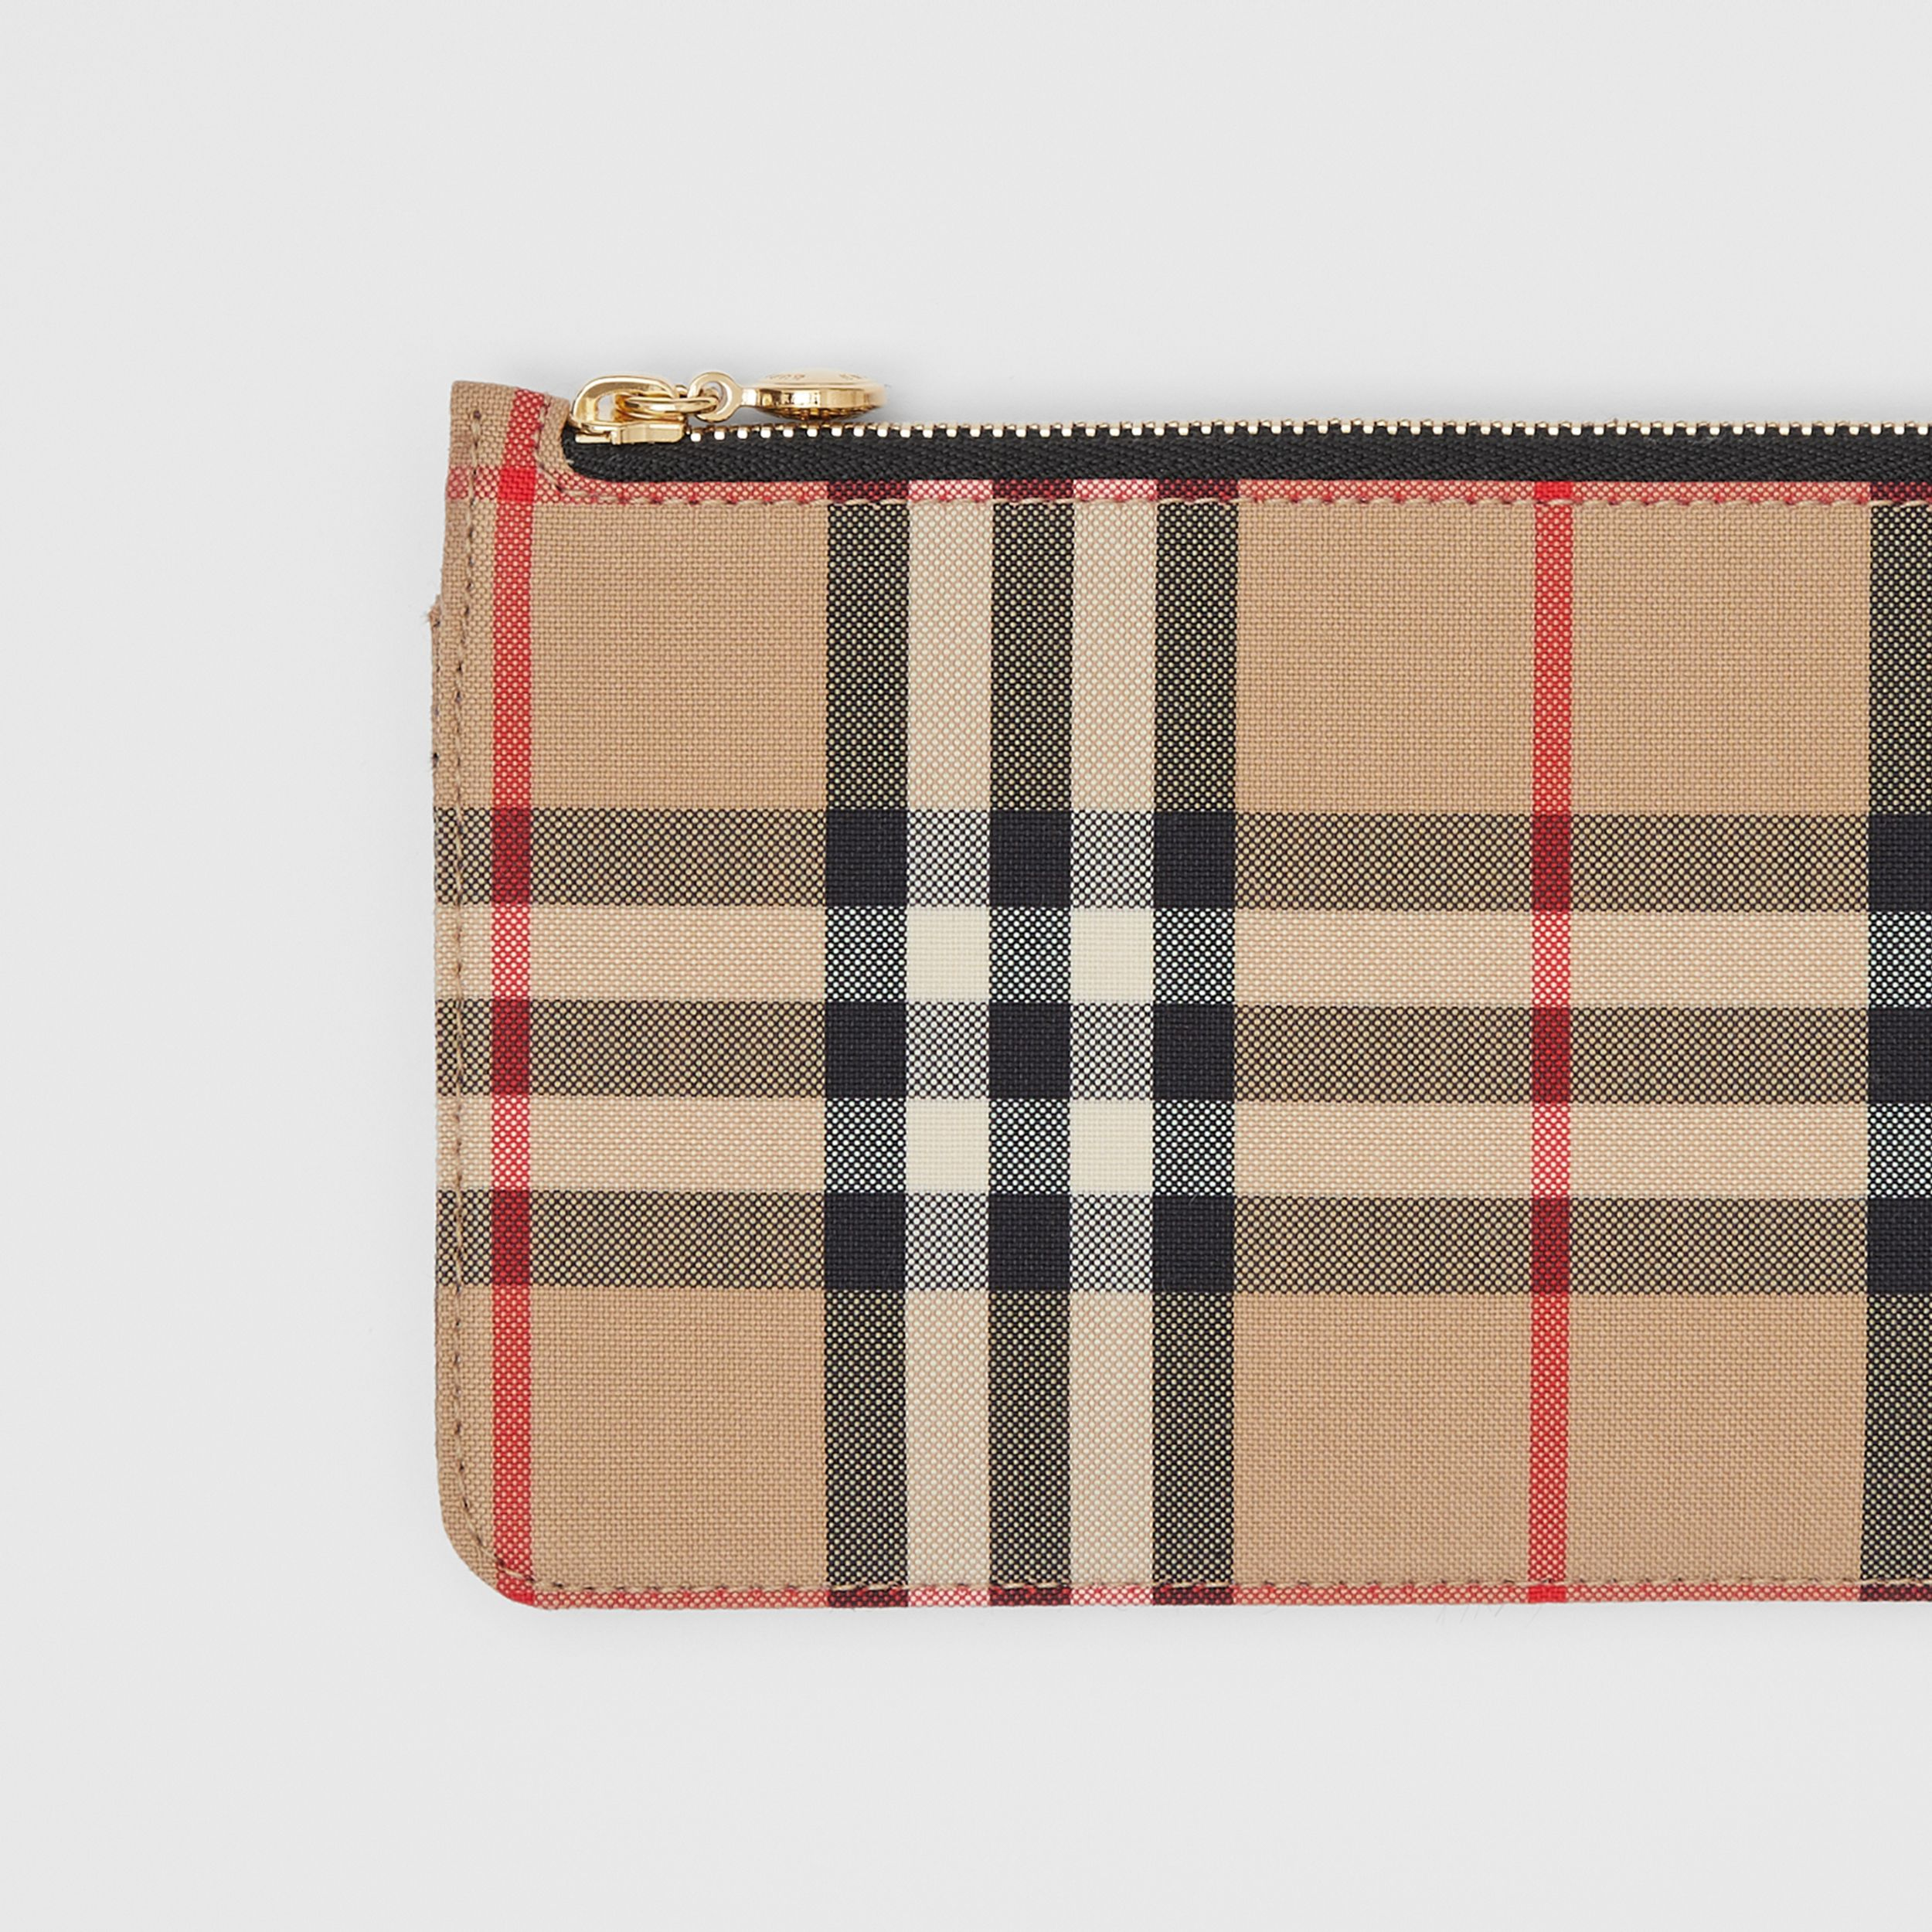 Vintage Check and Leather Phone Wallet in Black - Women | Burberry - 2